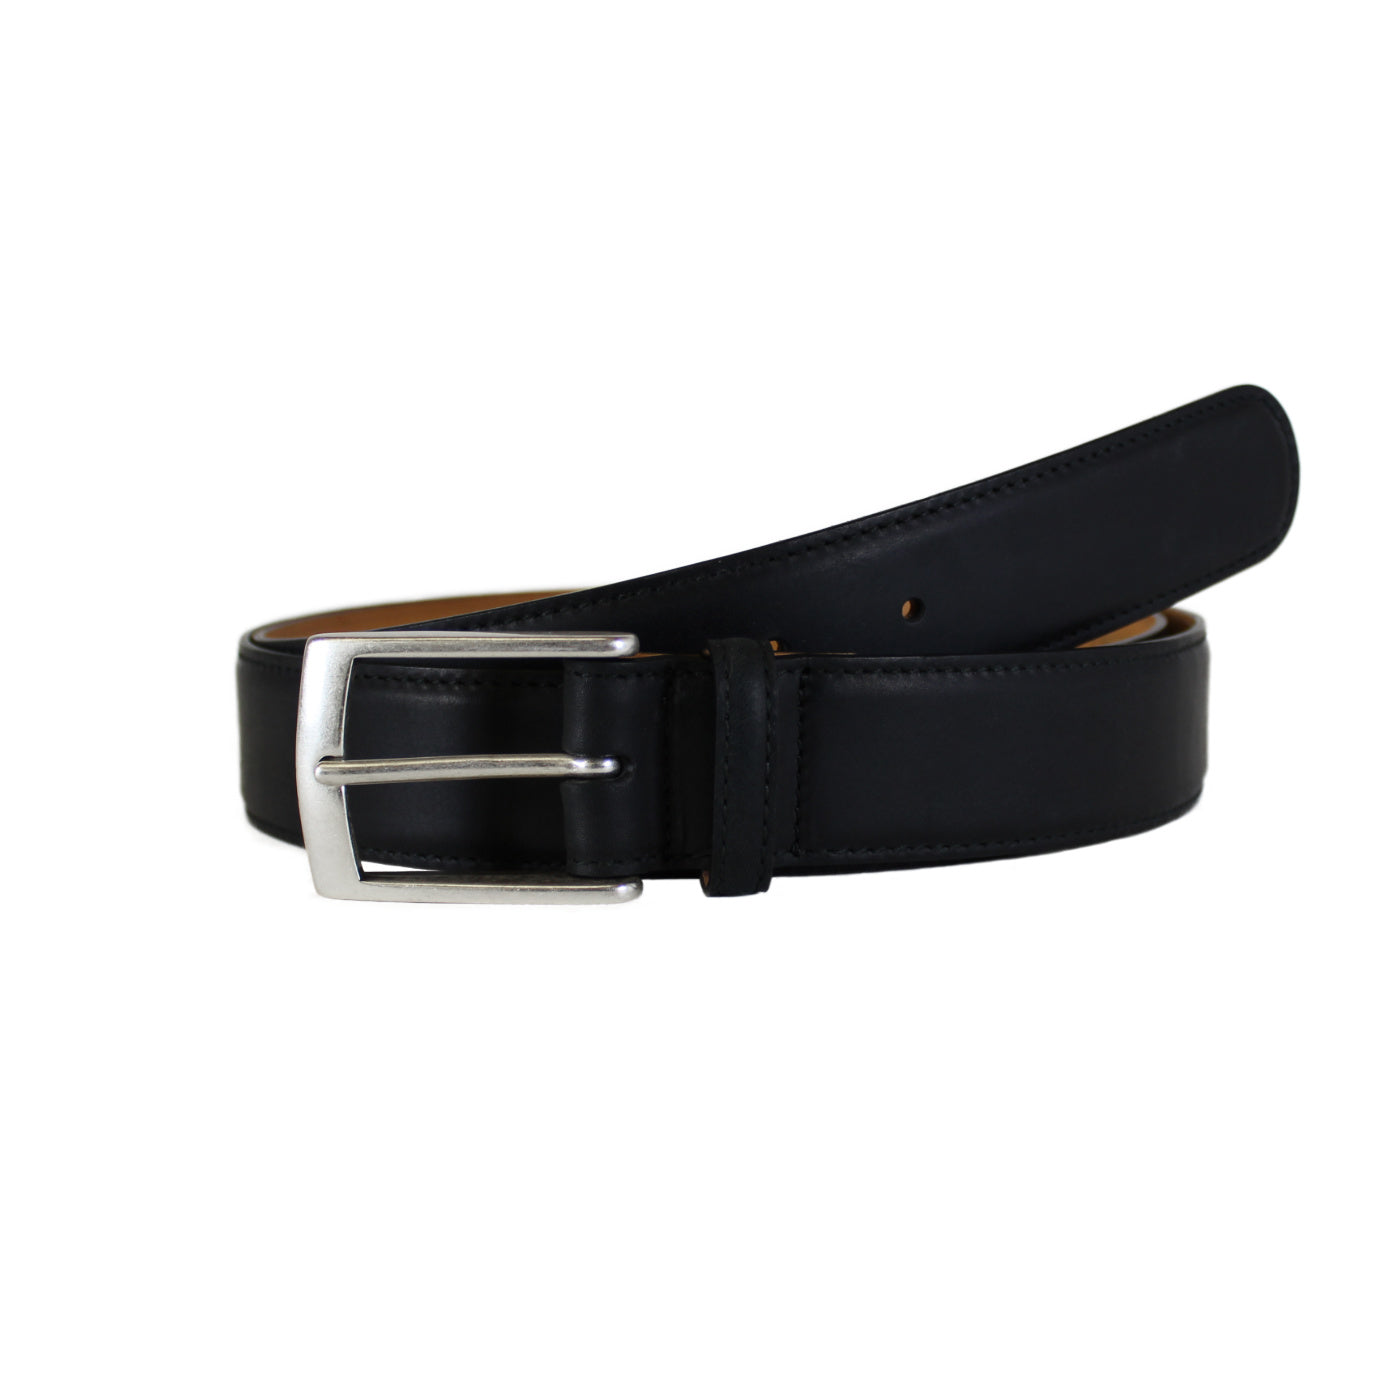 "Black Soft Vegetable Tanned Leather Belt (Width 35 mm - 1 ½"")"